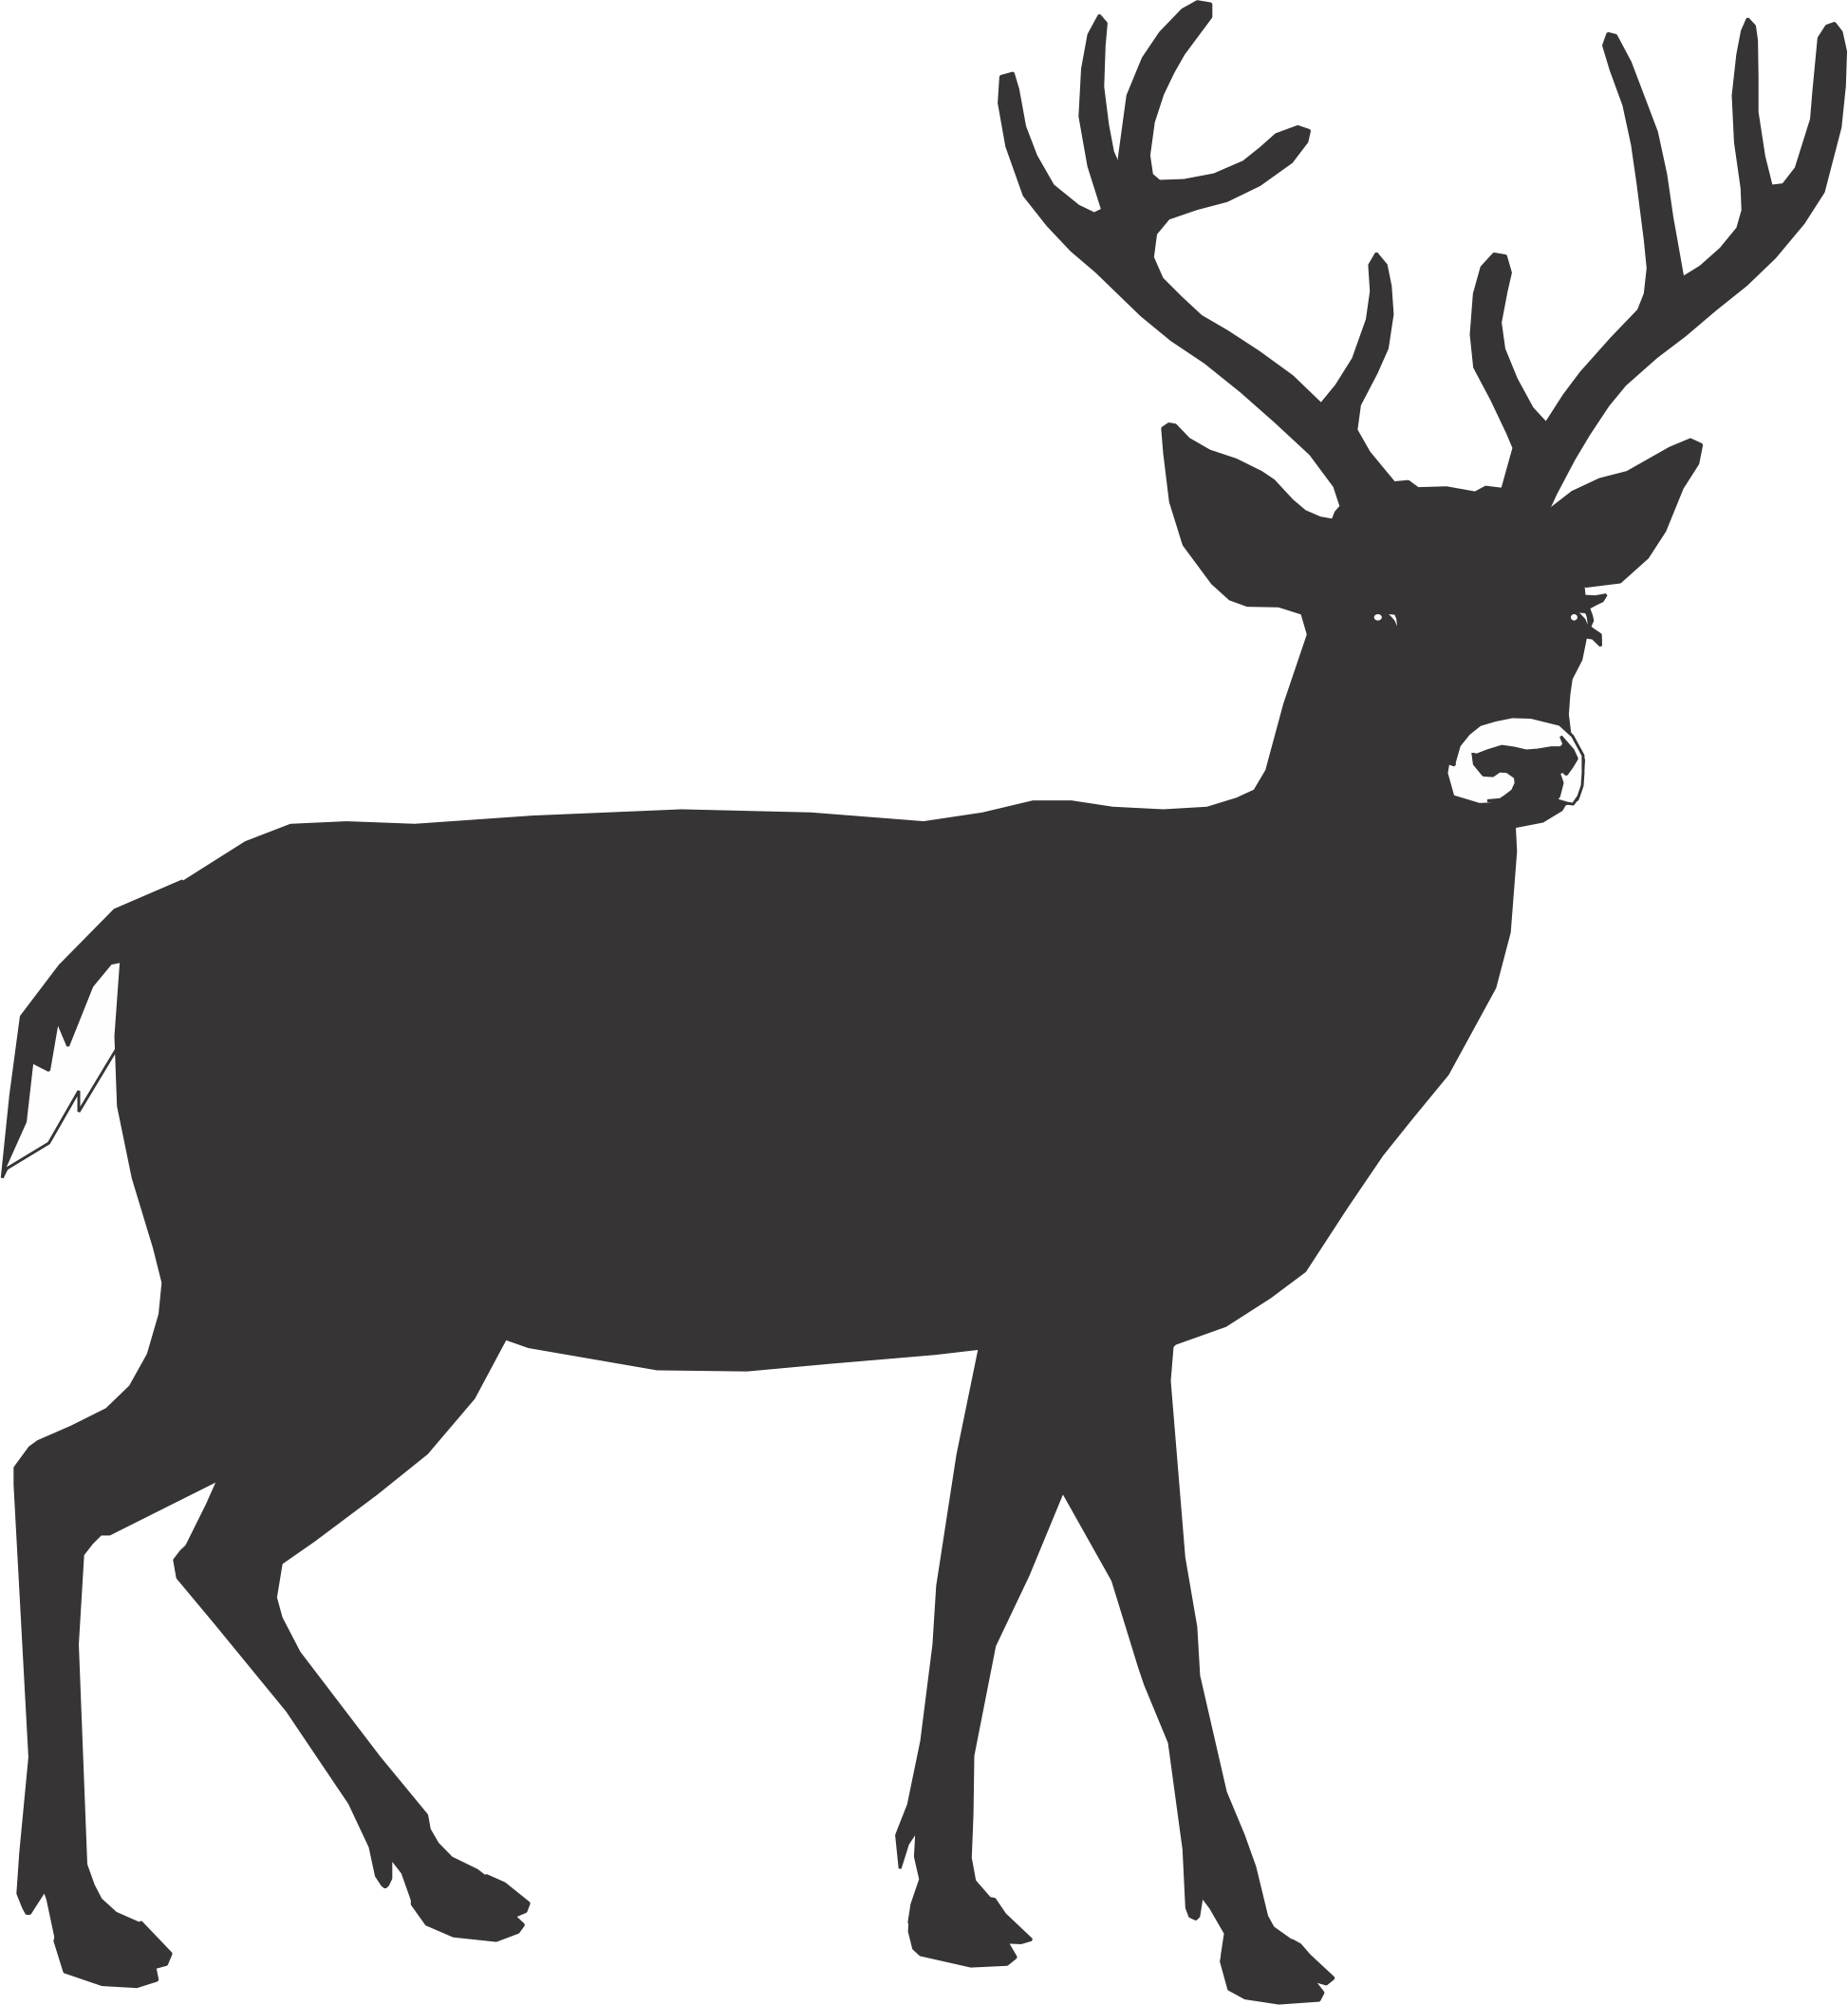 Buck deer head outline